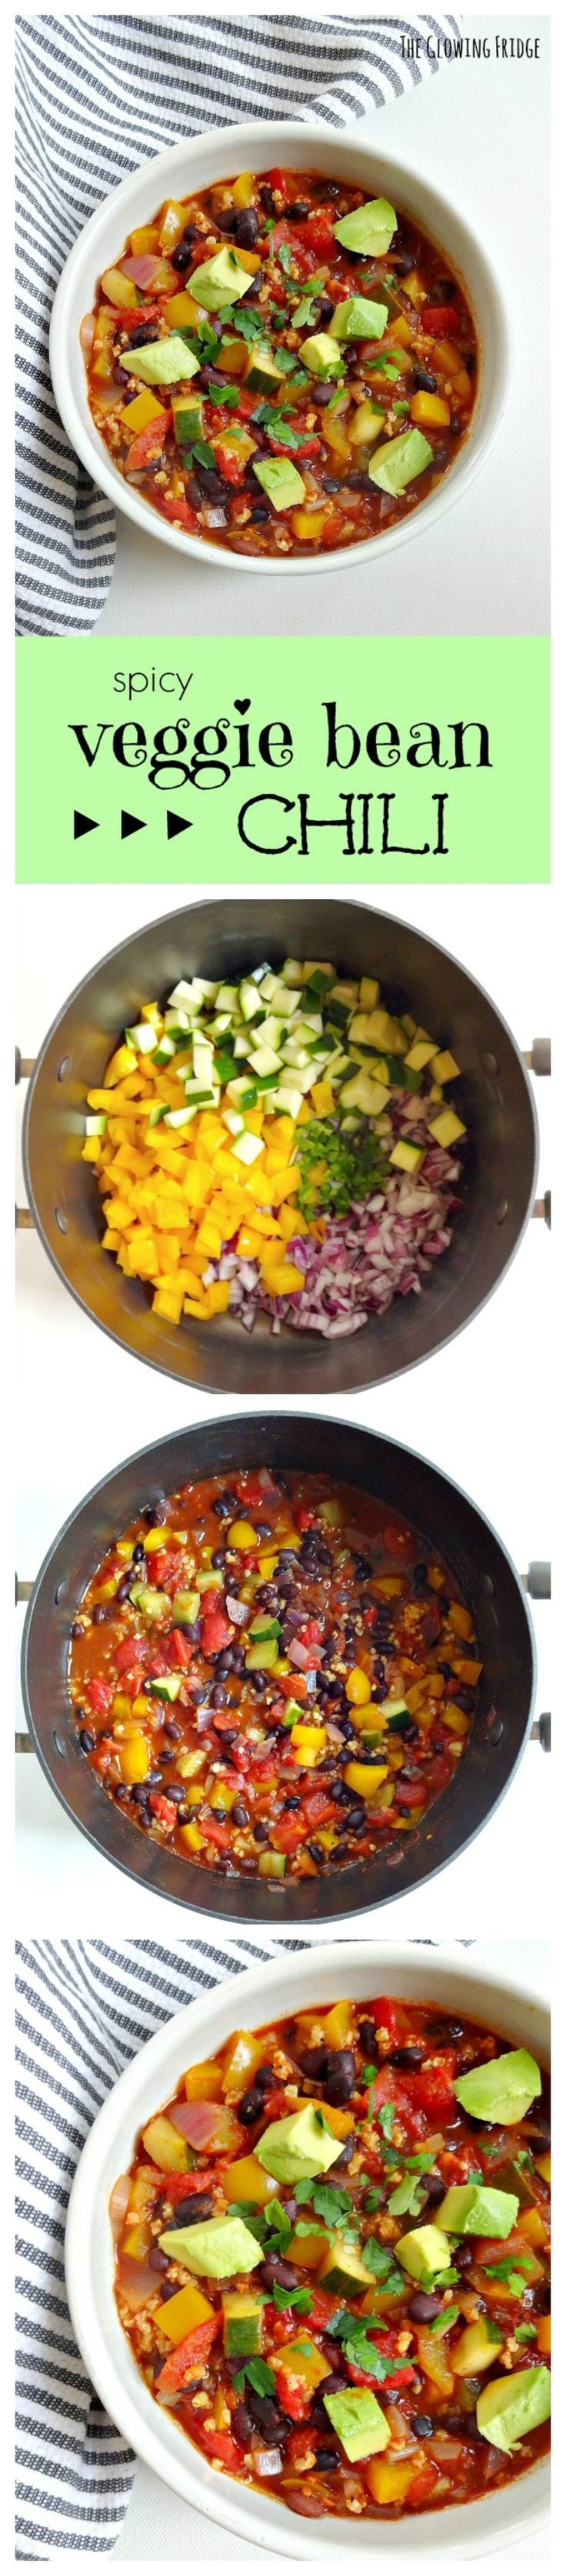 Spicy Veggie Bean Chili - fresh, comforting and full of flavor from a homemade blend of spices - from The Glowing Fridge